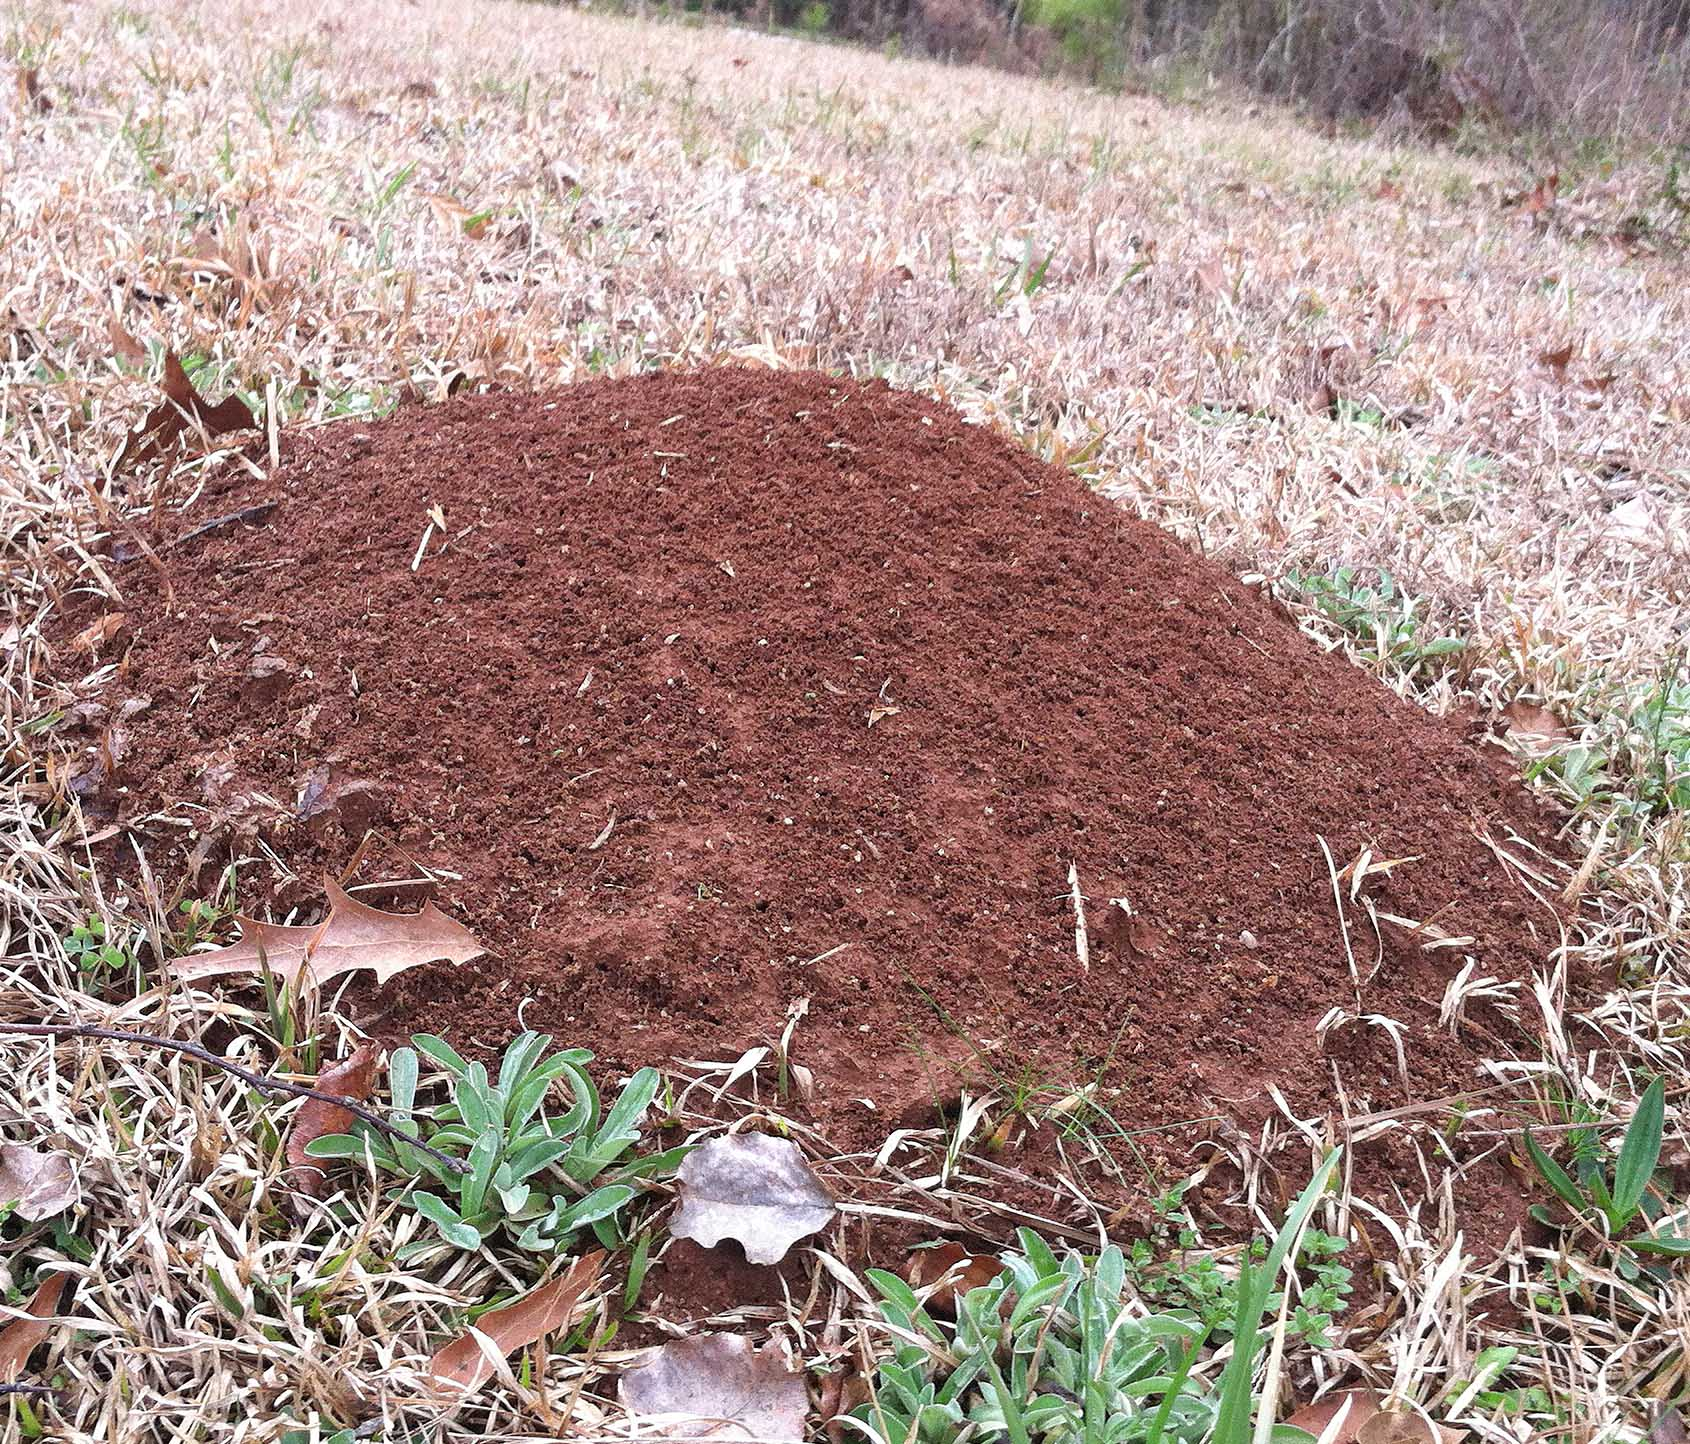 Don't let fire ants ruin your afternoons.